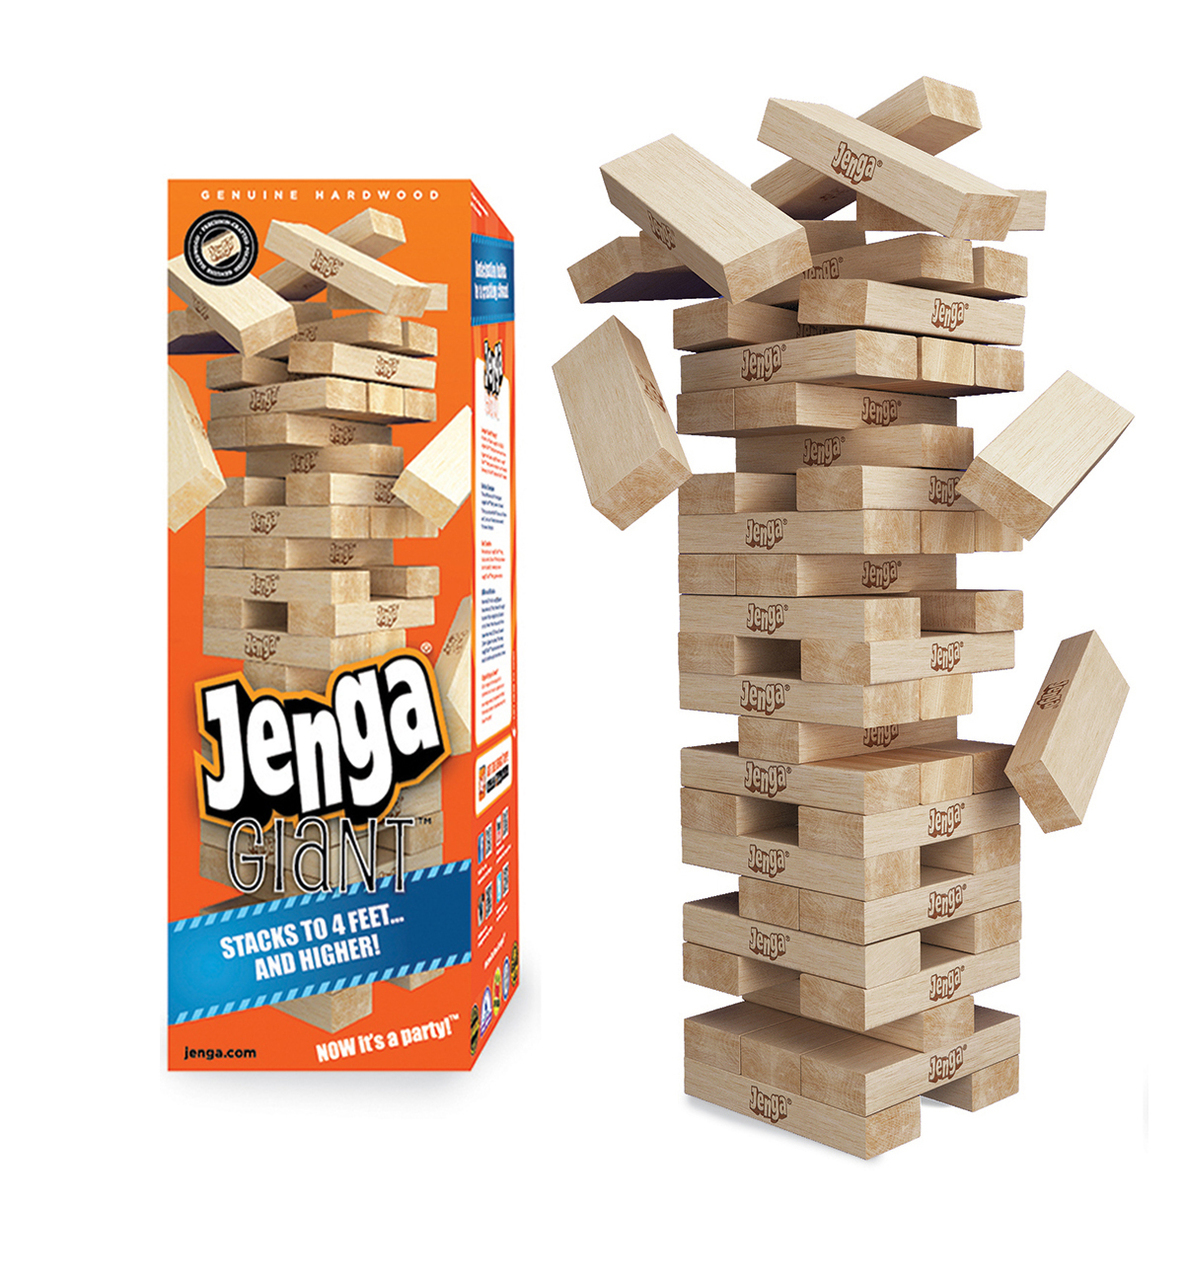 How many blocks are in a jenga game? - Answers